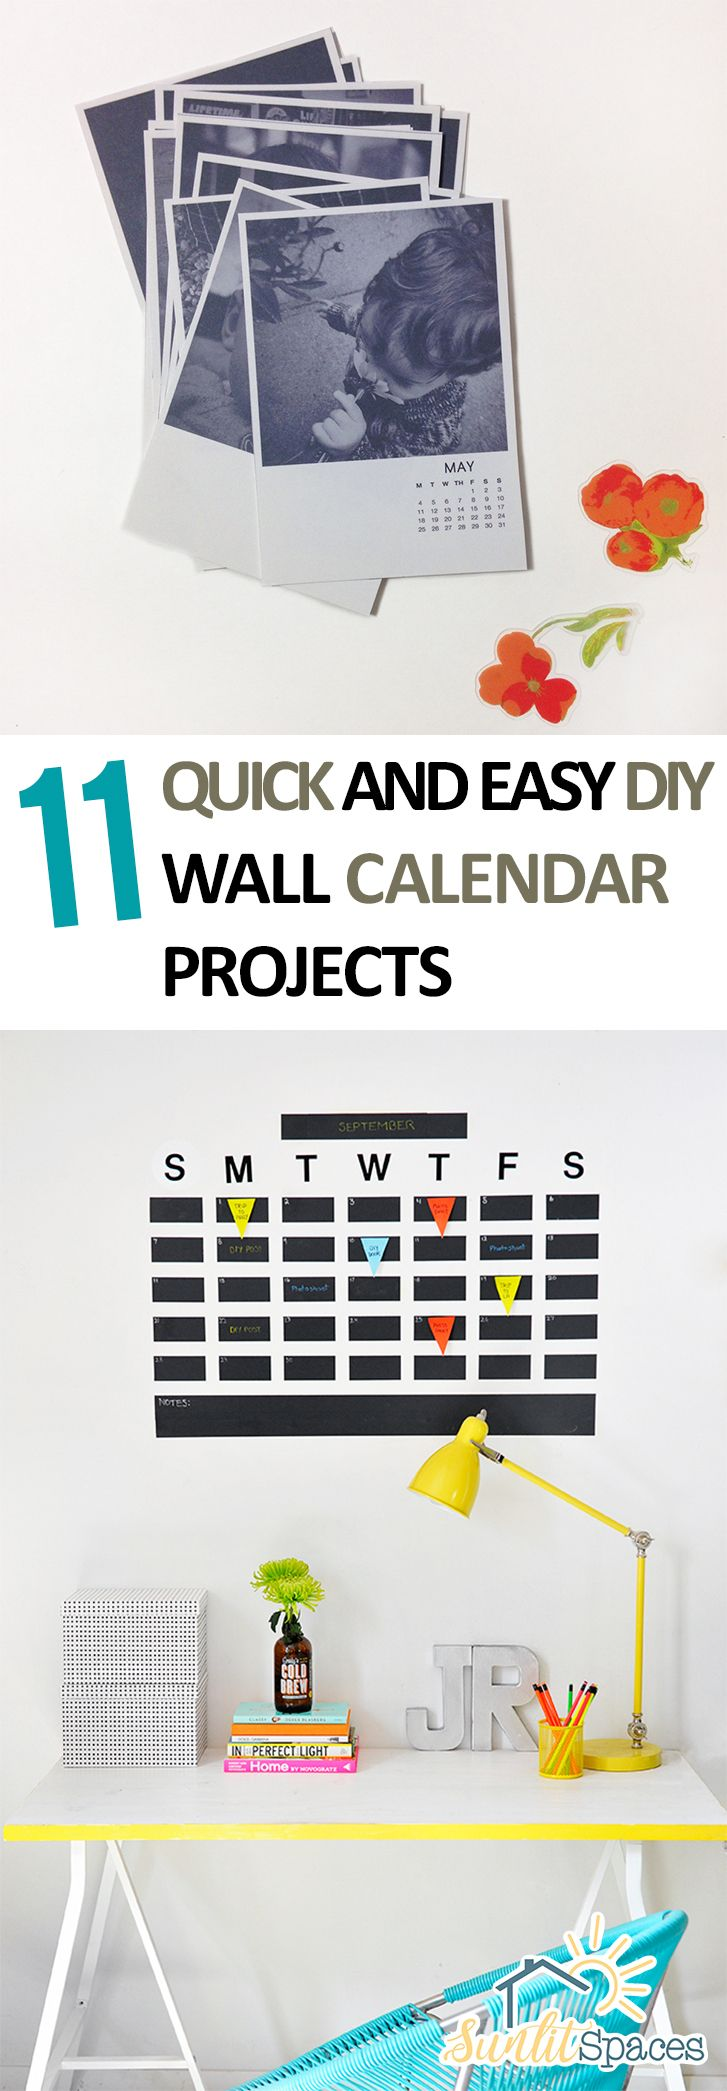 11 quick and easy diy wall calendar projects diy wall and easy 11 quick and easy diy wall calendar projects solutioingenieria Image collections